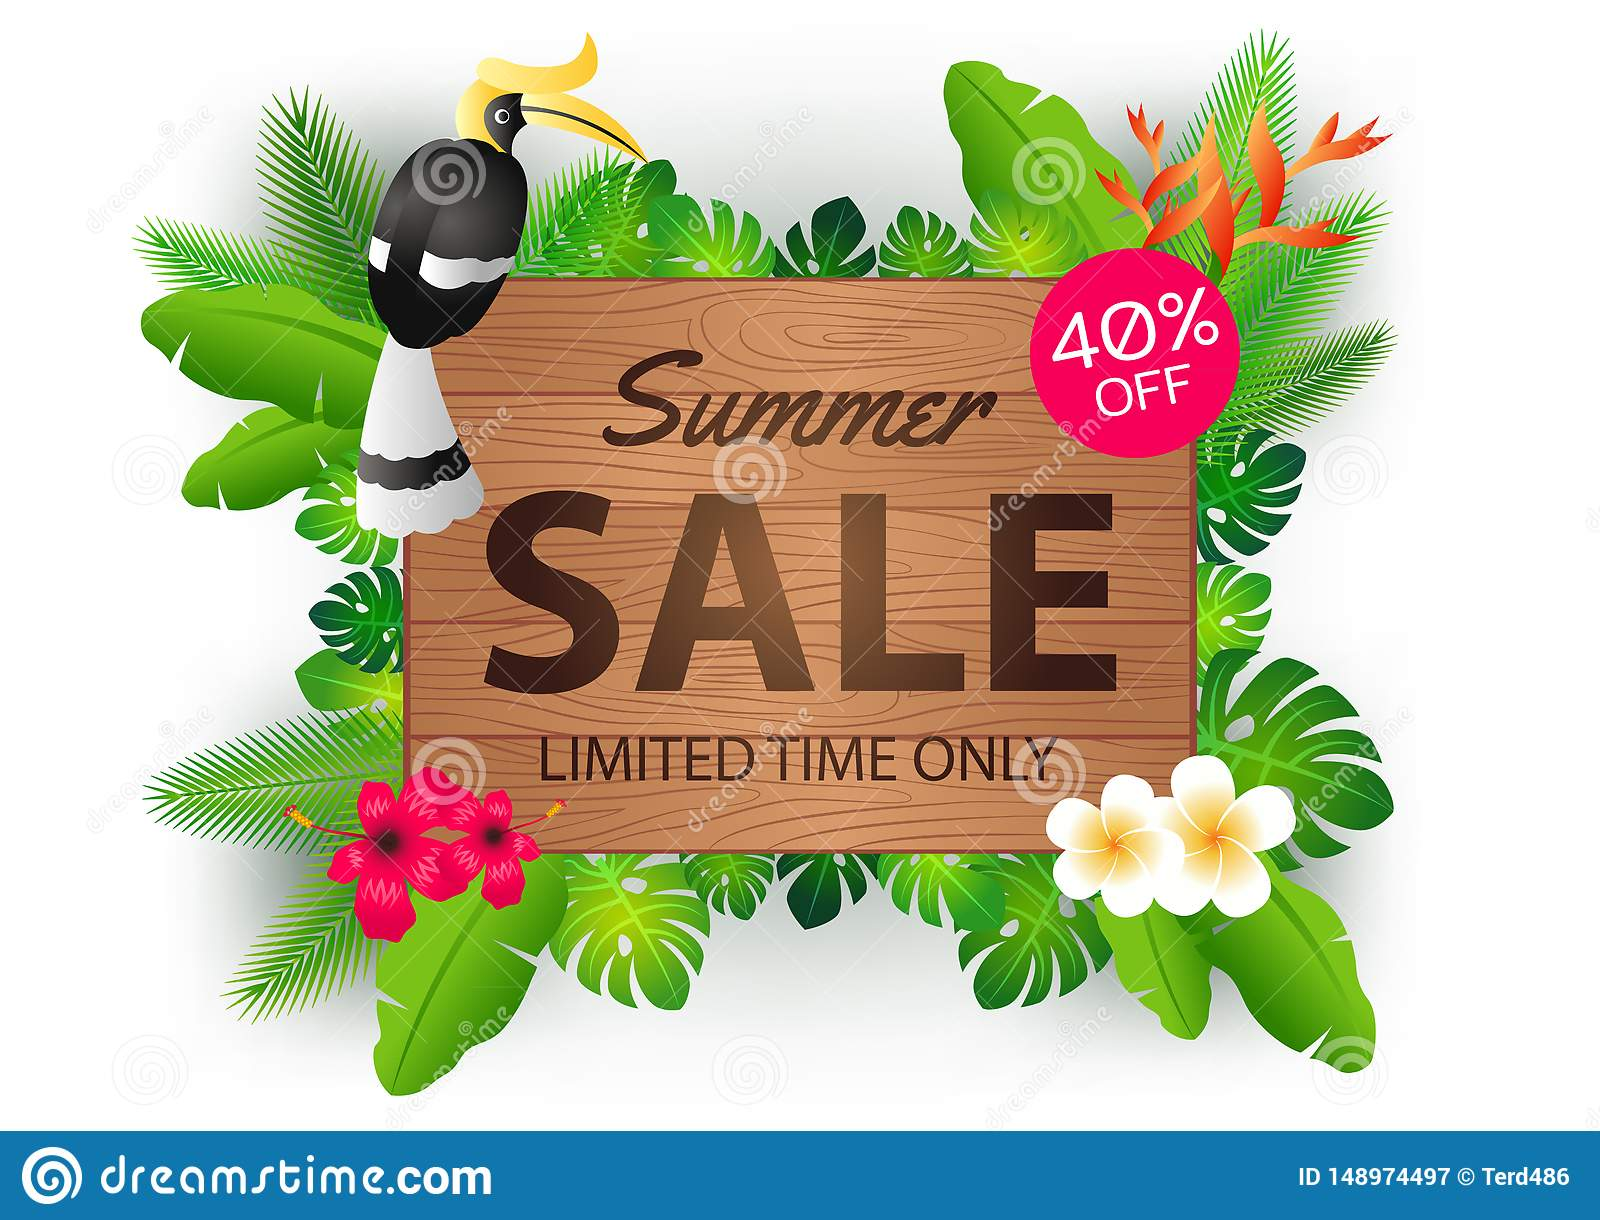 Summer sale offer banner decorative element with its symbol,modern and fashionable design